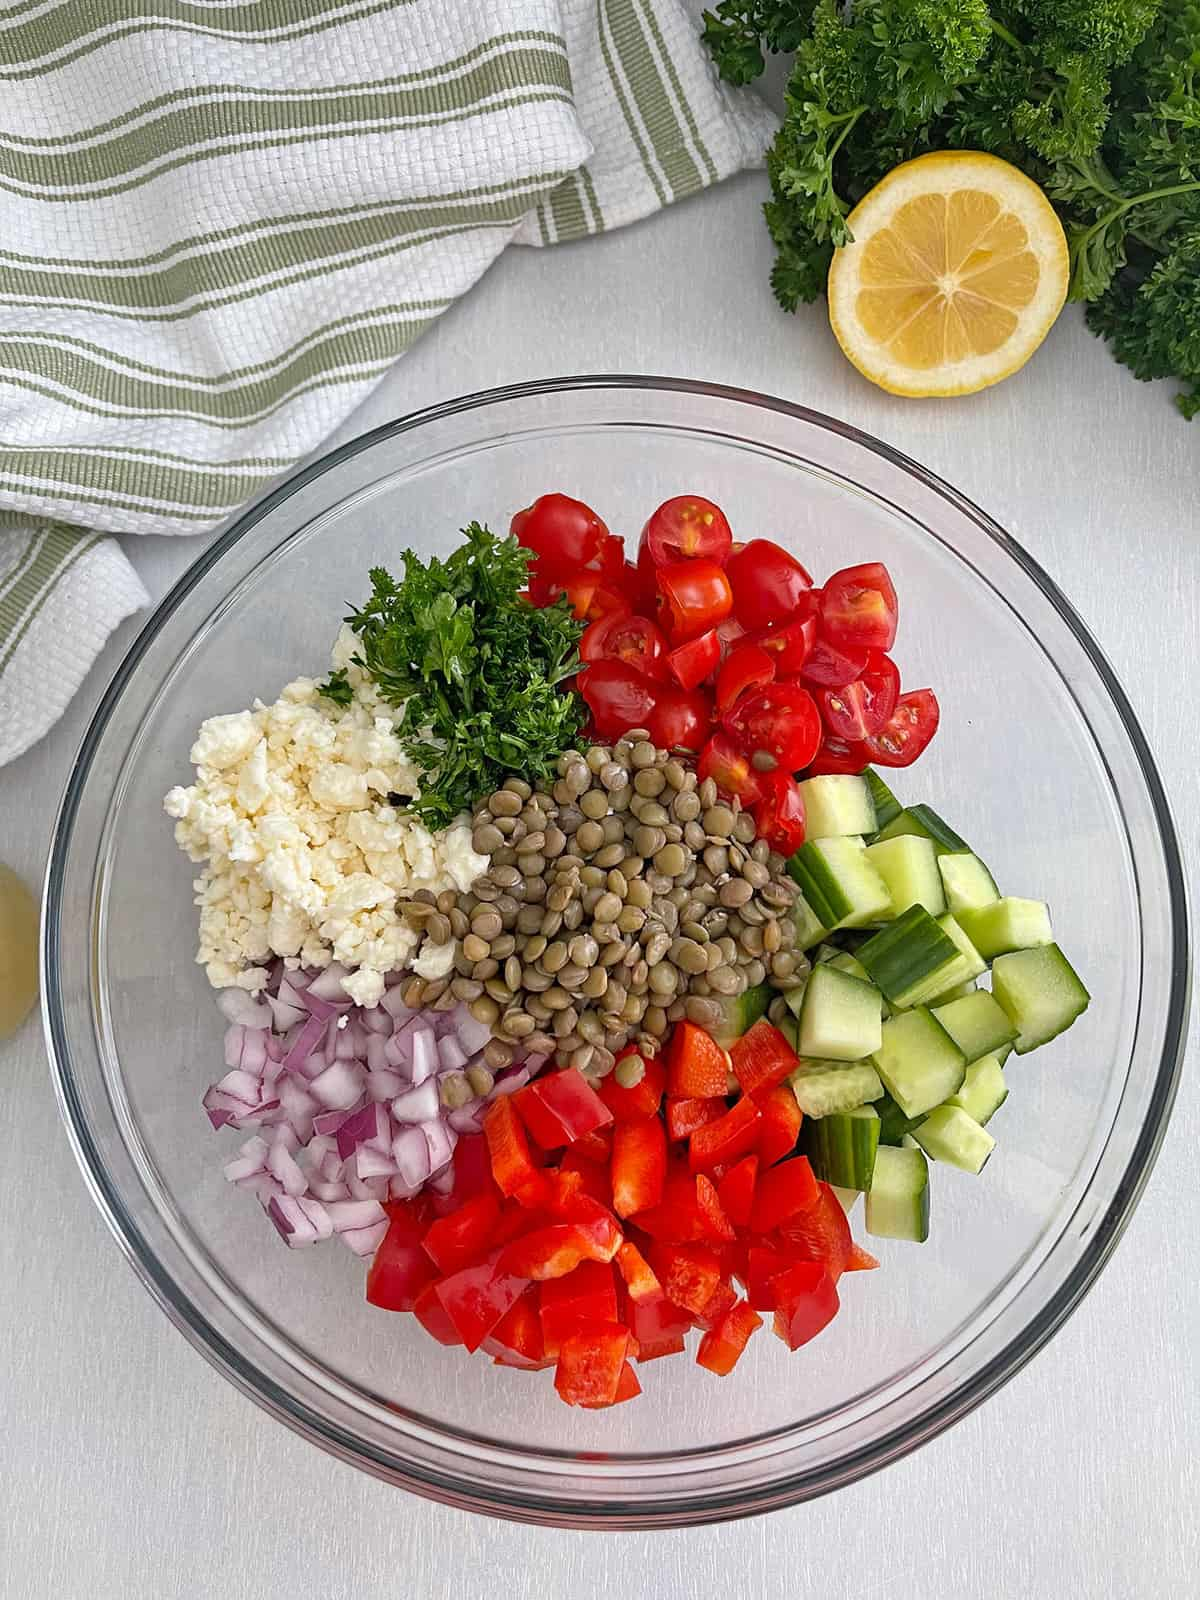 Lentils, bell peppers, cucumber, tomatoes, parsley, feta, and red onion in bowl.